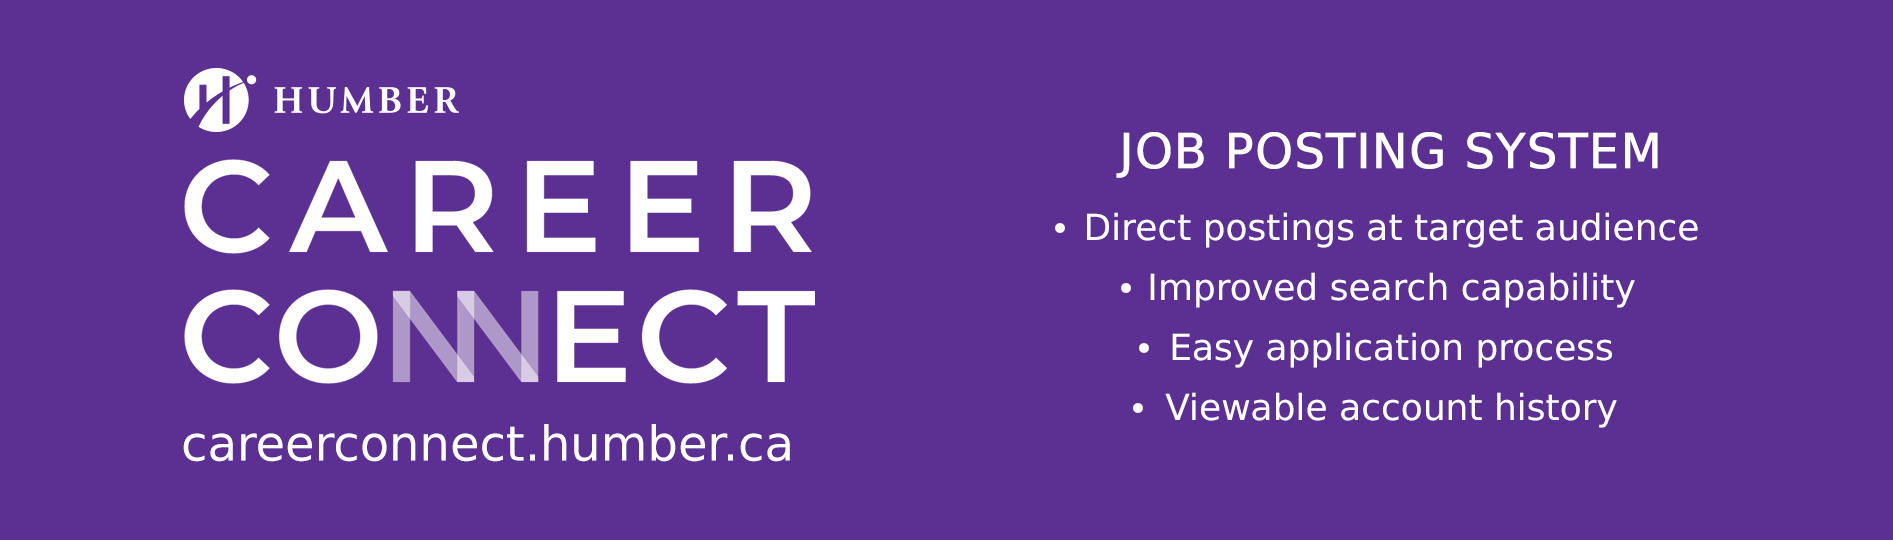 CareerConnect Job Posting System